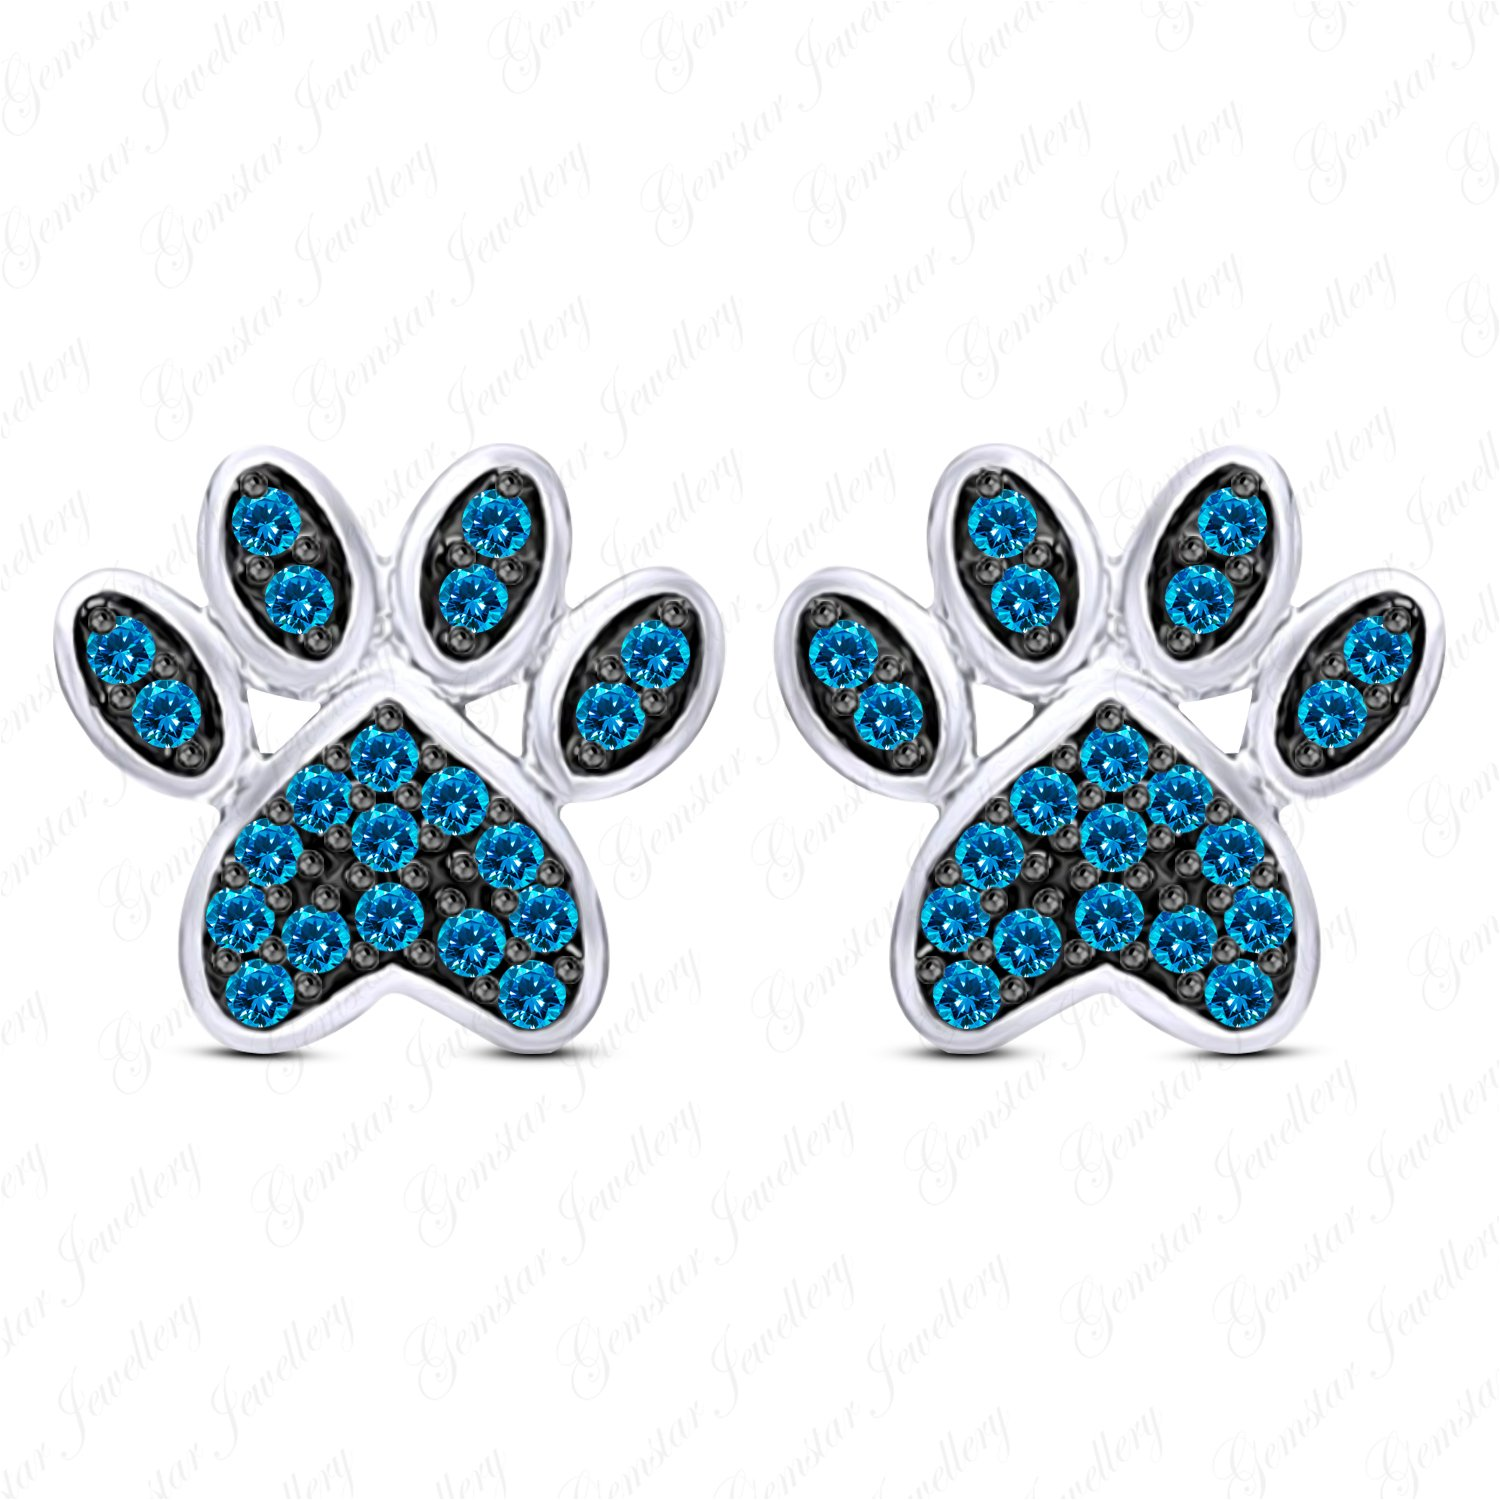 Gemstar Jewellery Excellent Blue Topaz Dog Paw Stud Earrings In 14k White Gold Finish Pure 925 Silver